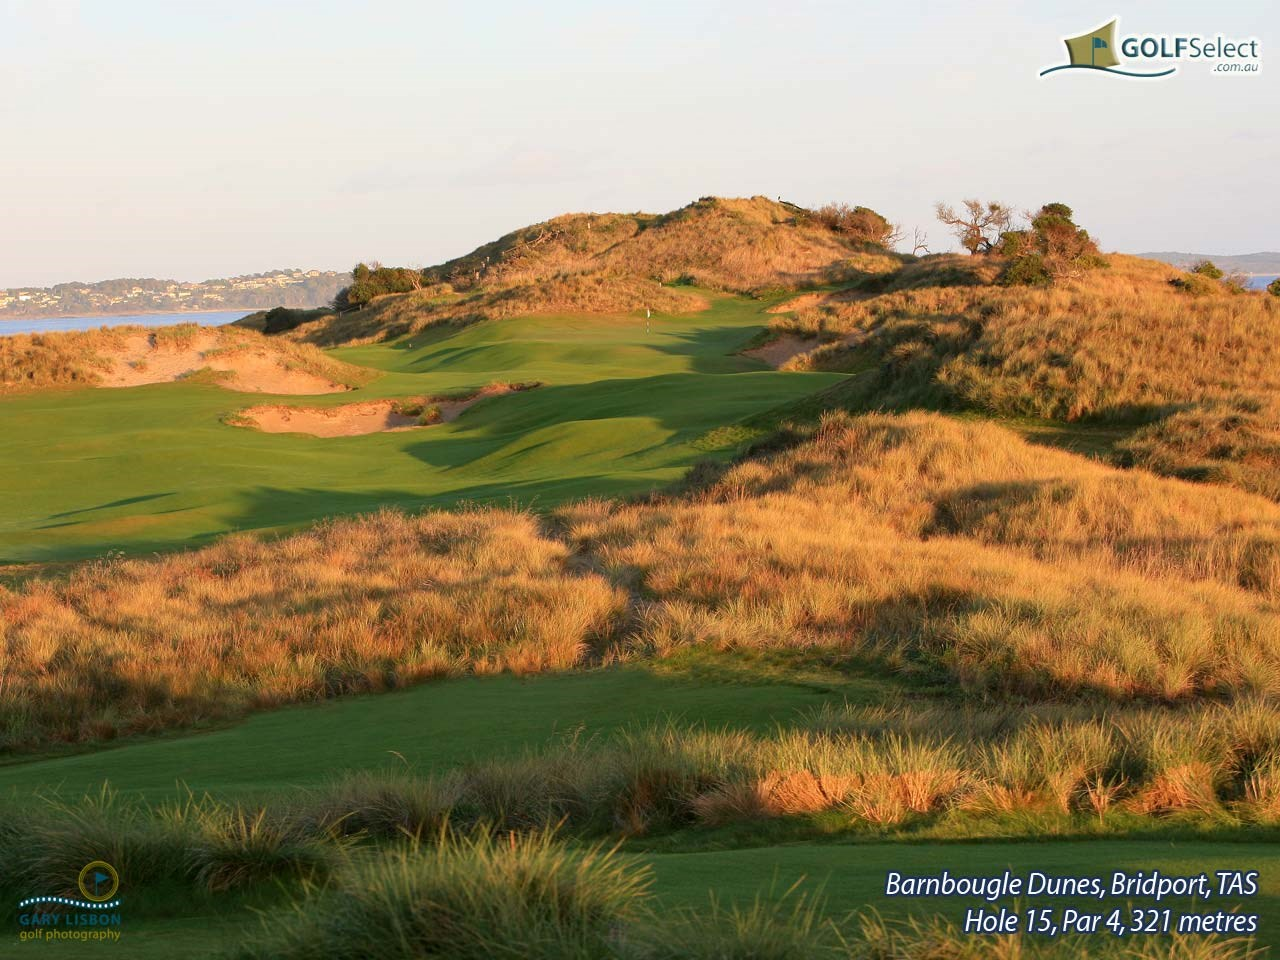 Barnbougle Dunes Golf Links Hole 15, Par 4, 321 metres